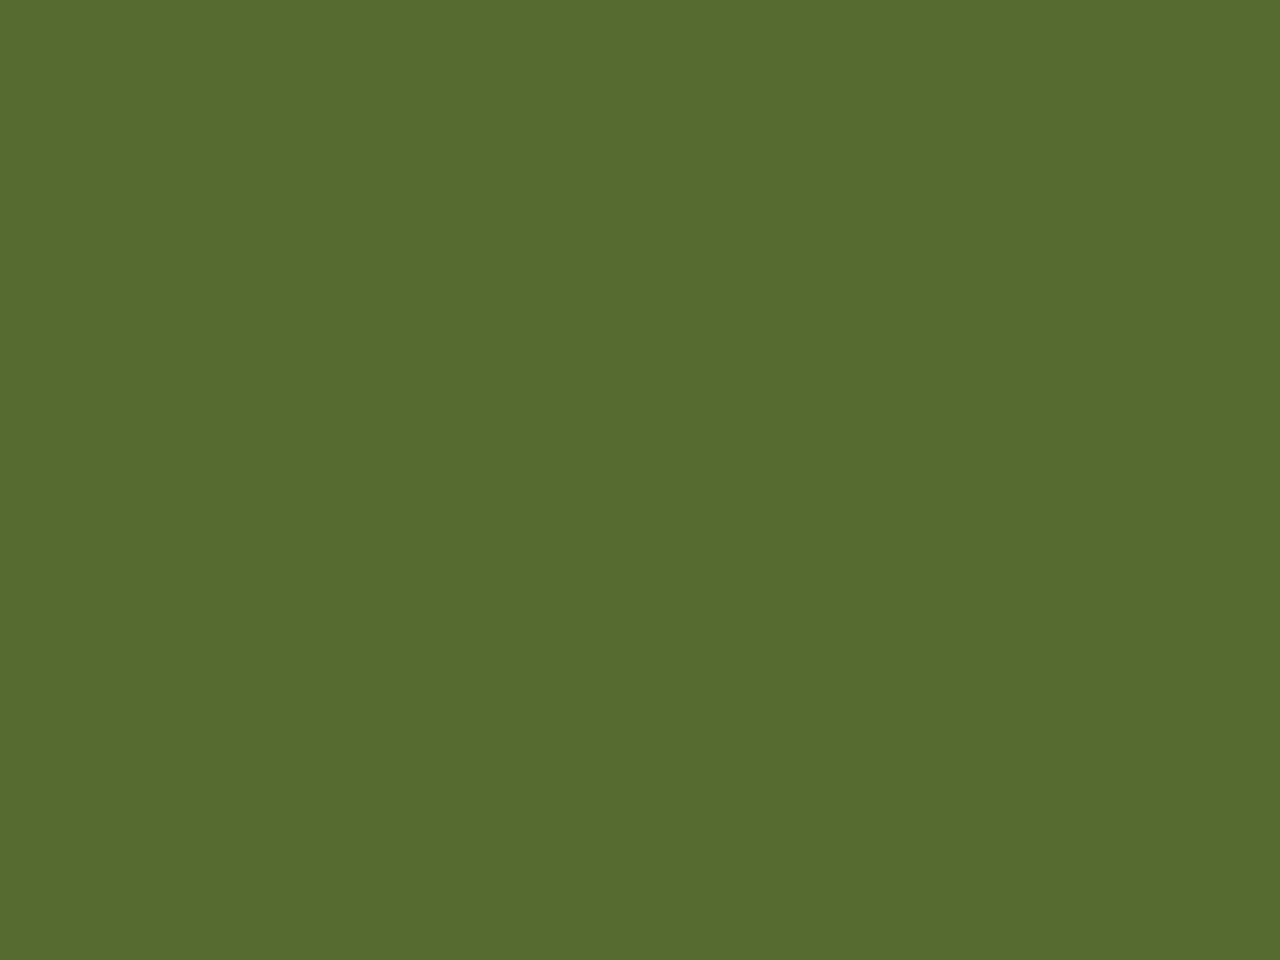 1280x960 Dark Olive Green Solid Color Background